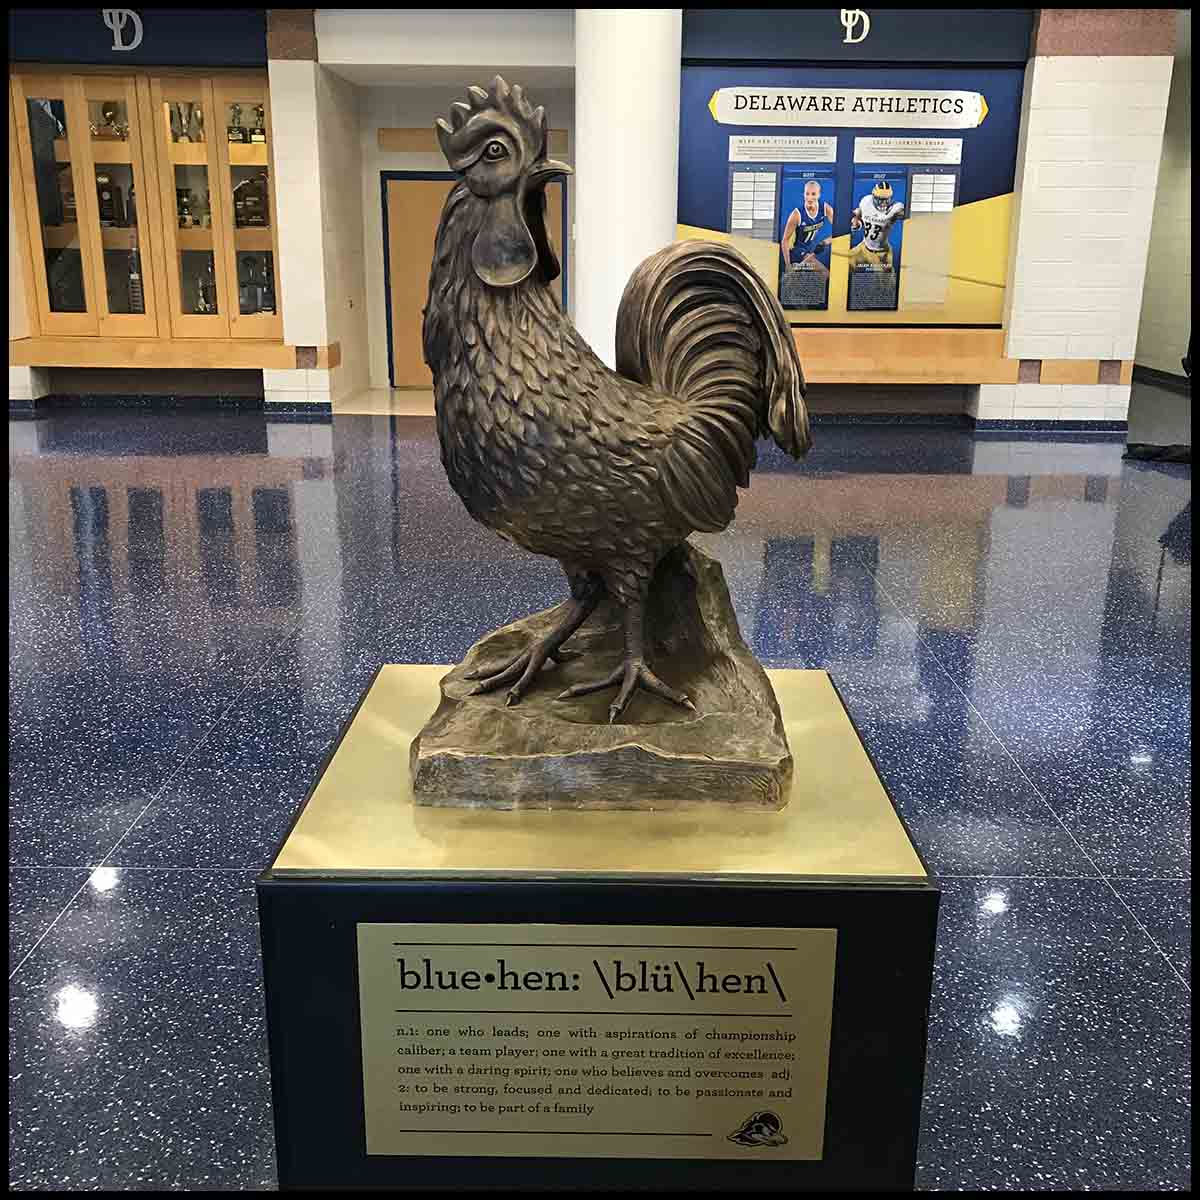 photo of bronze sculpture of hen on black and gold base in large room with blue floor